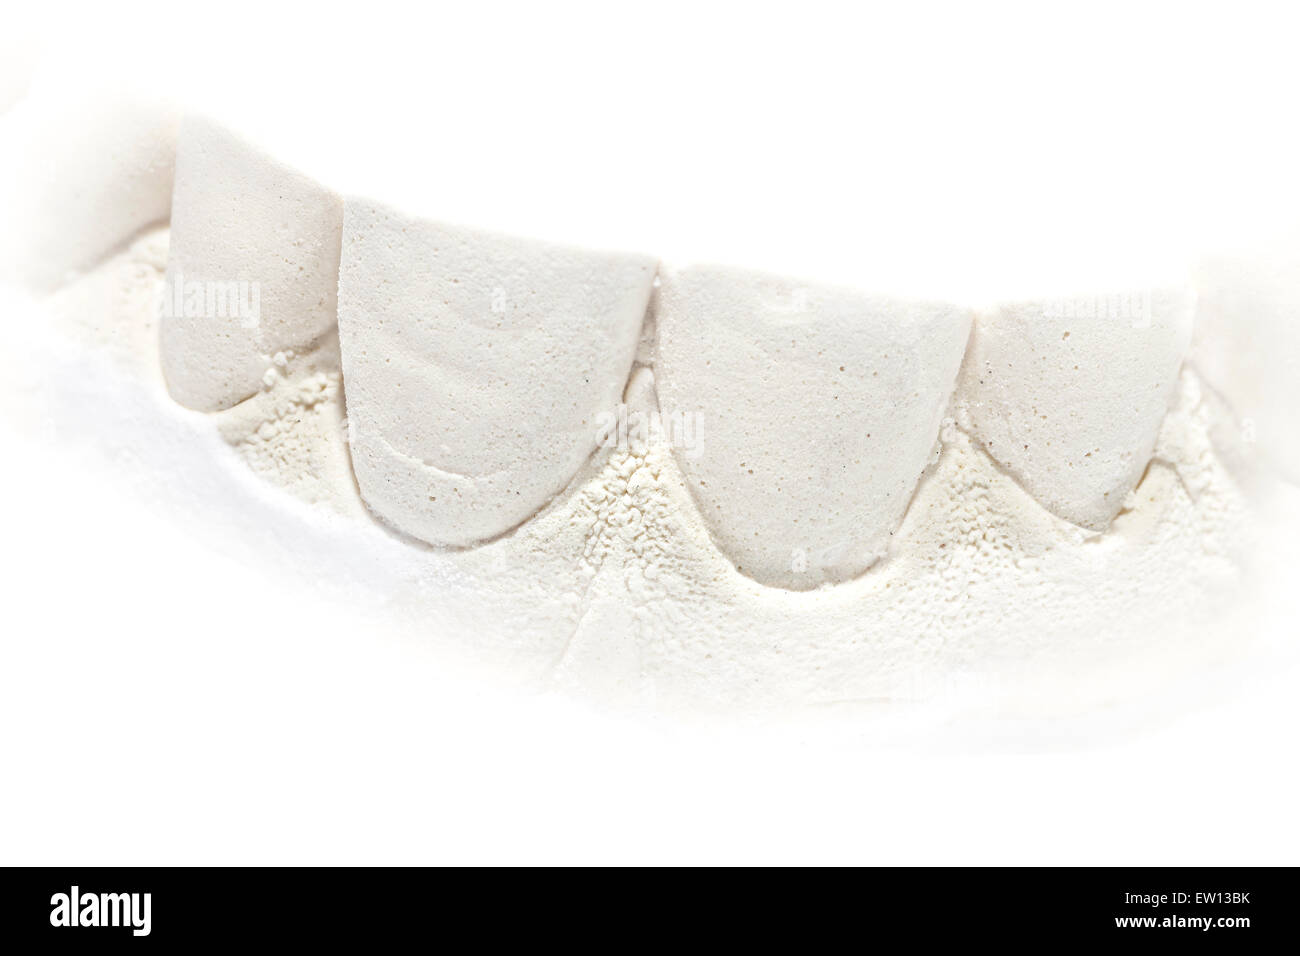 Tooth Shape Stock Photos & Tooth Shape Stock Images - Alamy